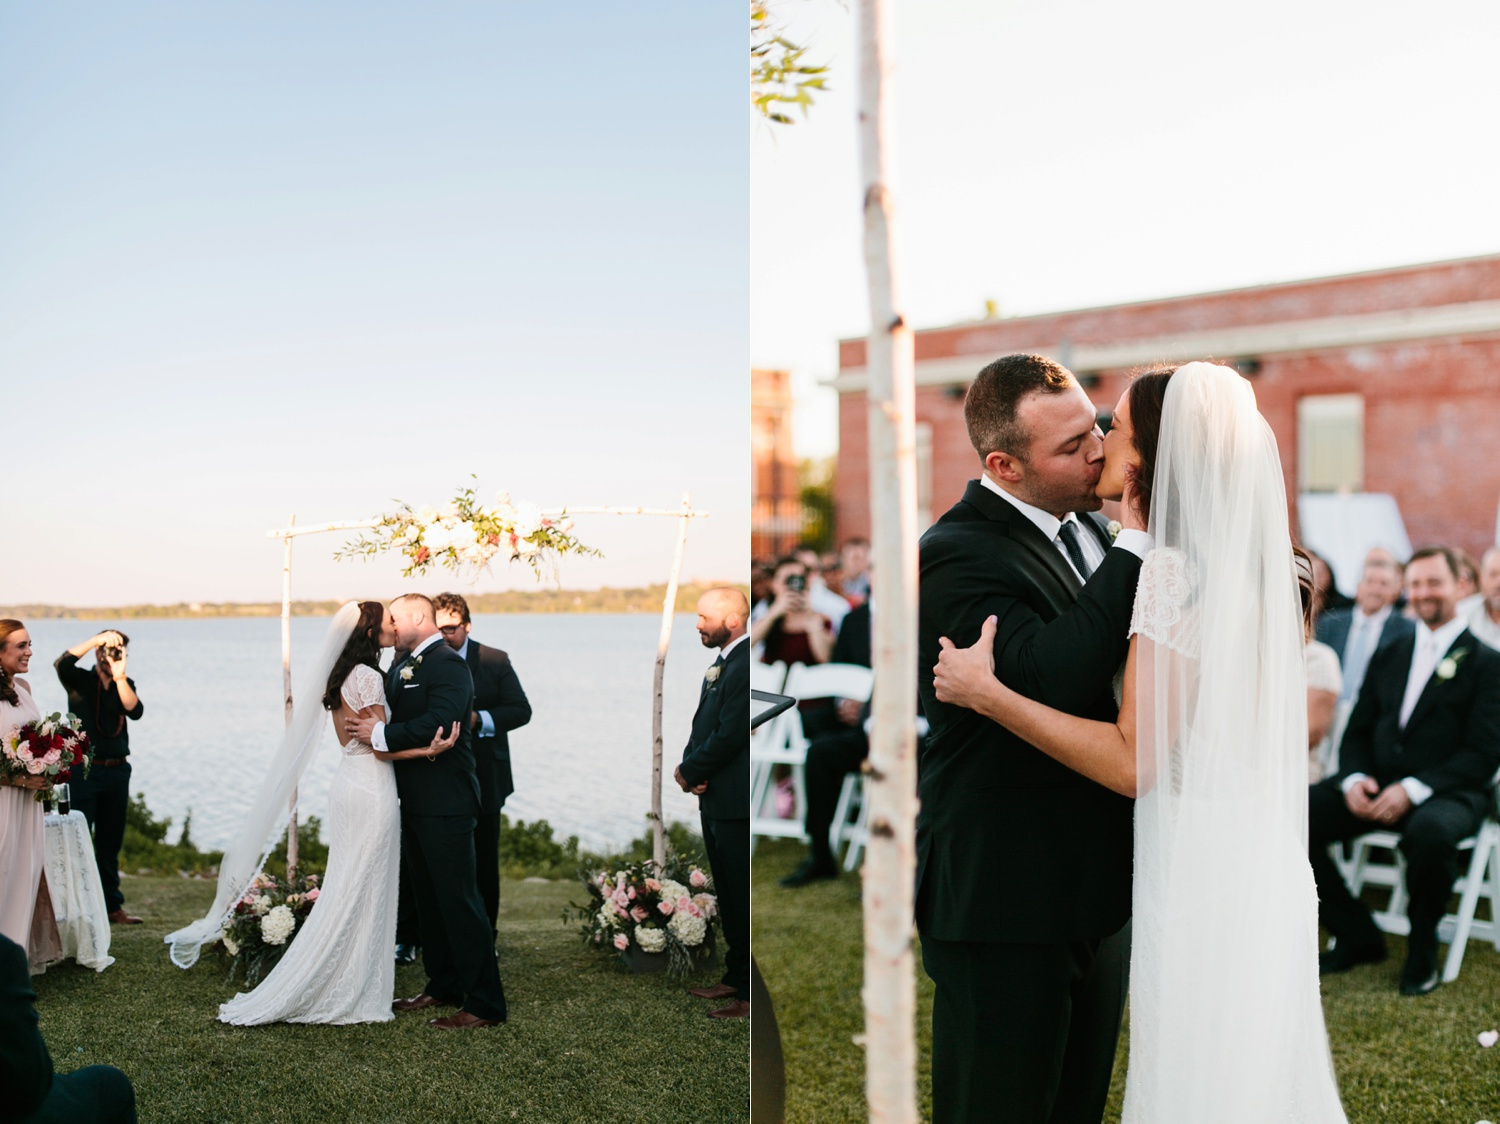 Kadee + Tyler | a raw, emotional wedding at the Filter Building on White Rock Lake in Dallas, TX by North Texas Wedding Photographer, Rachel Meagan Photography 145